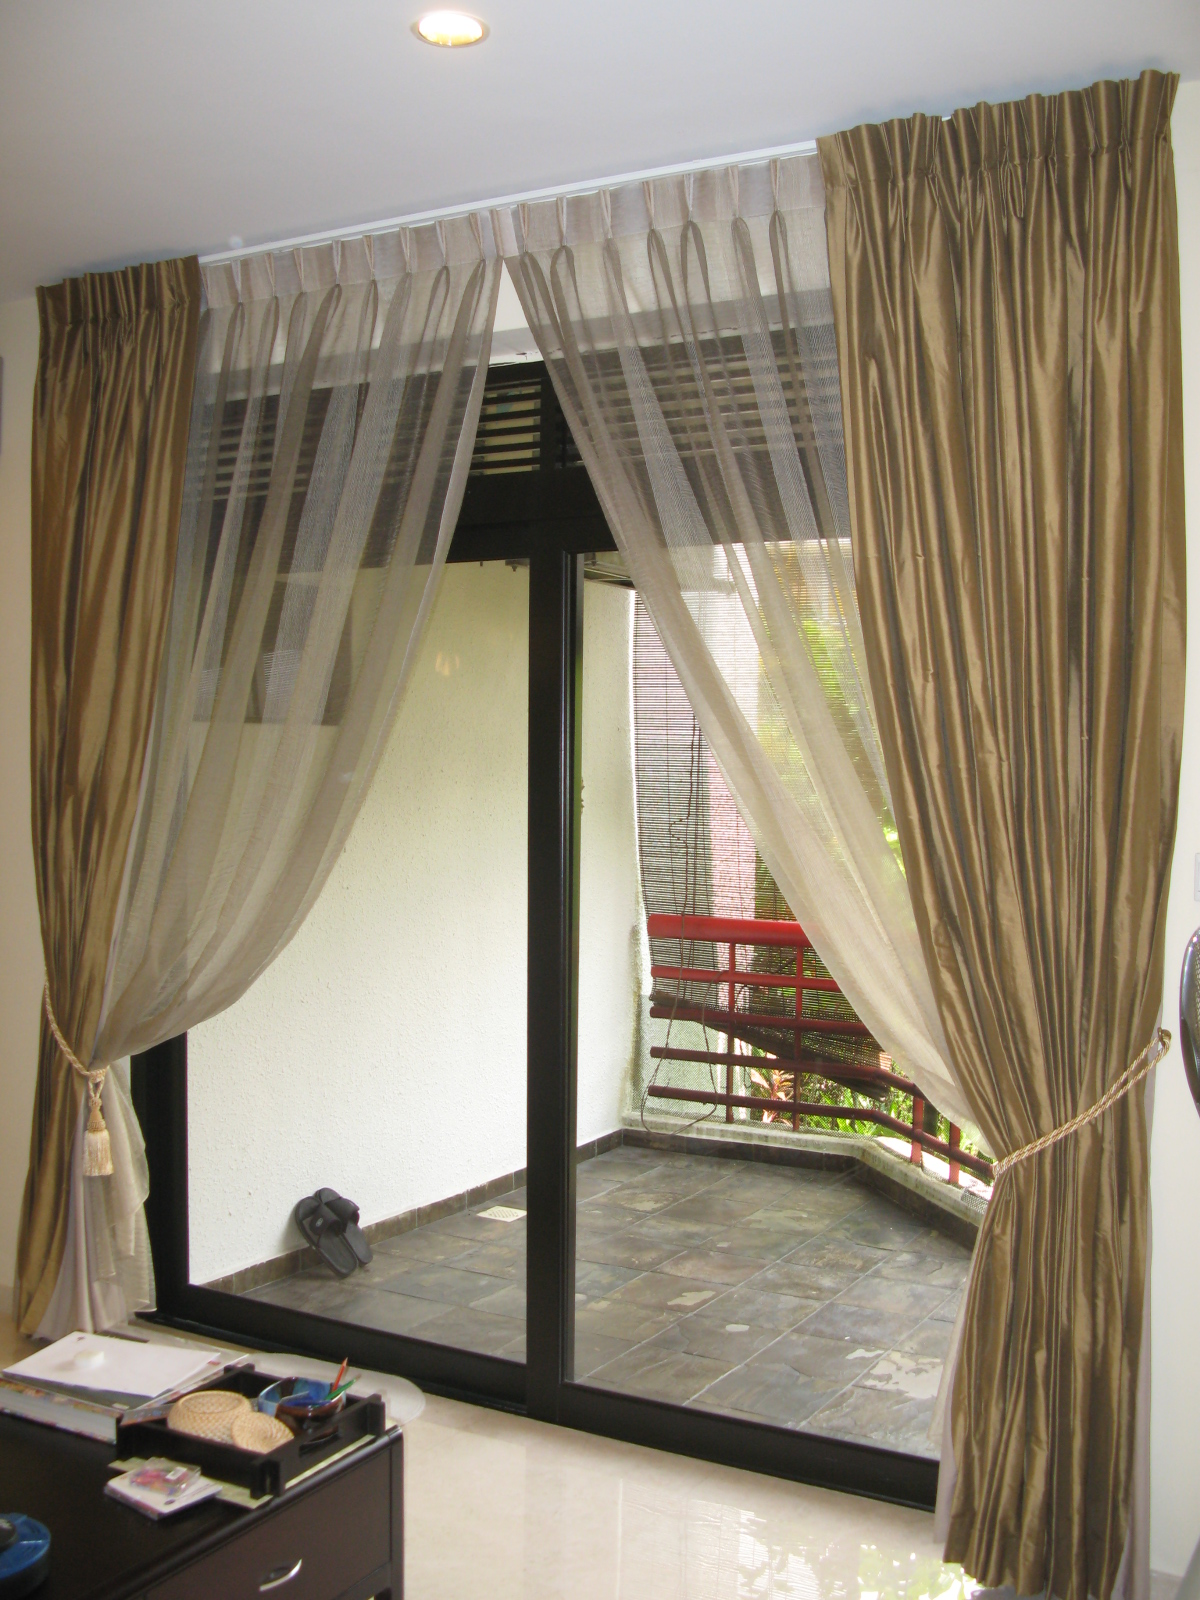 Future House Design: Stylish Interior With Window Curtain ...